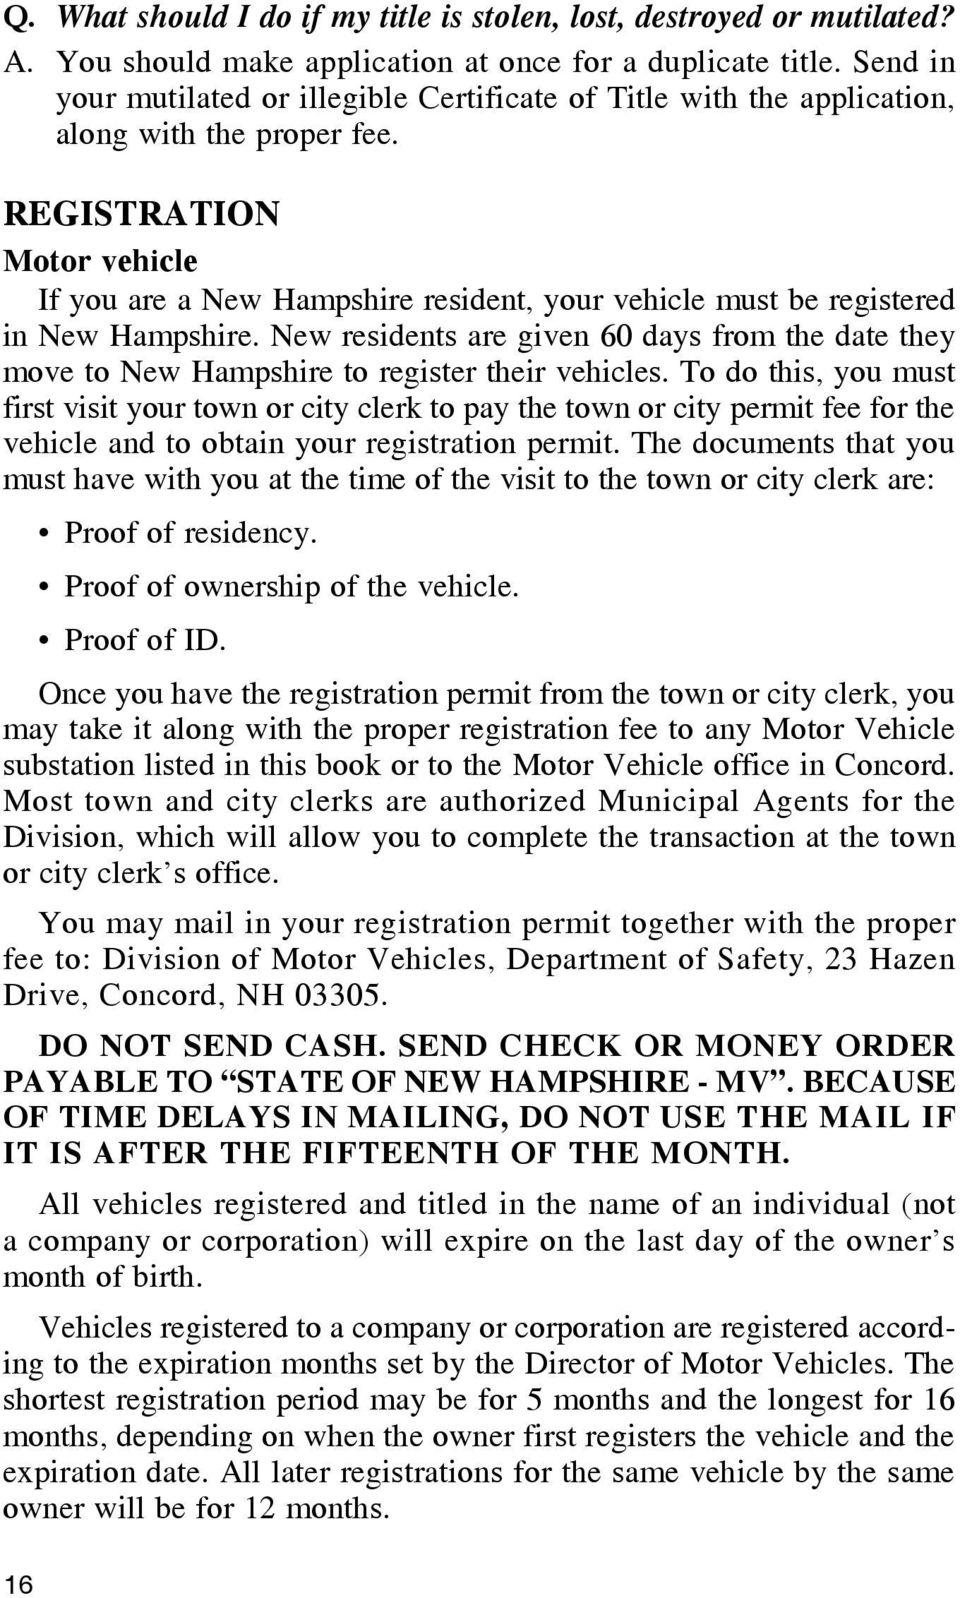 REGISTRATION Motor vehicle If you are a New Hampshire resident, your vehicle must be registered in New Hampshire.